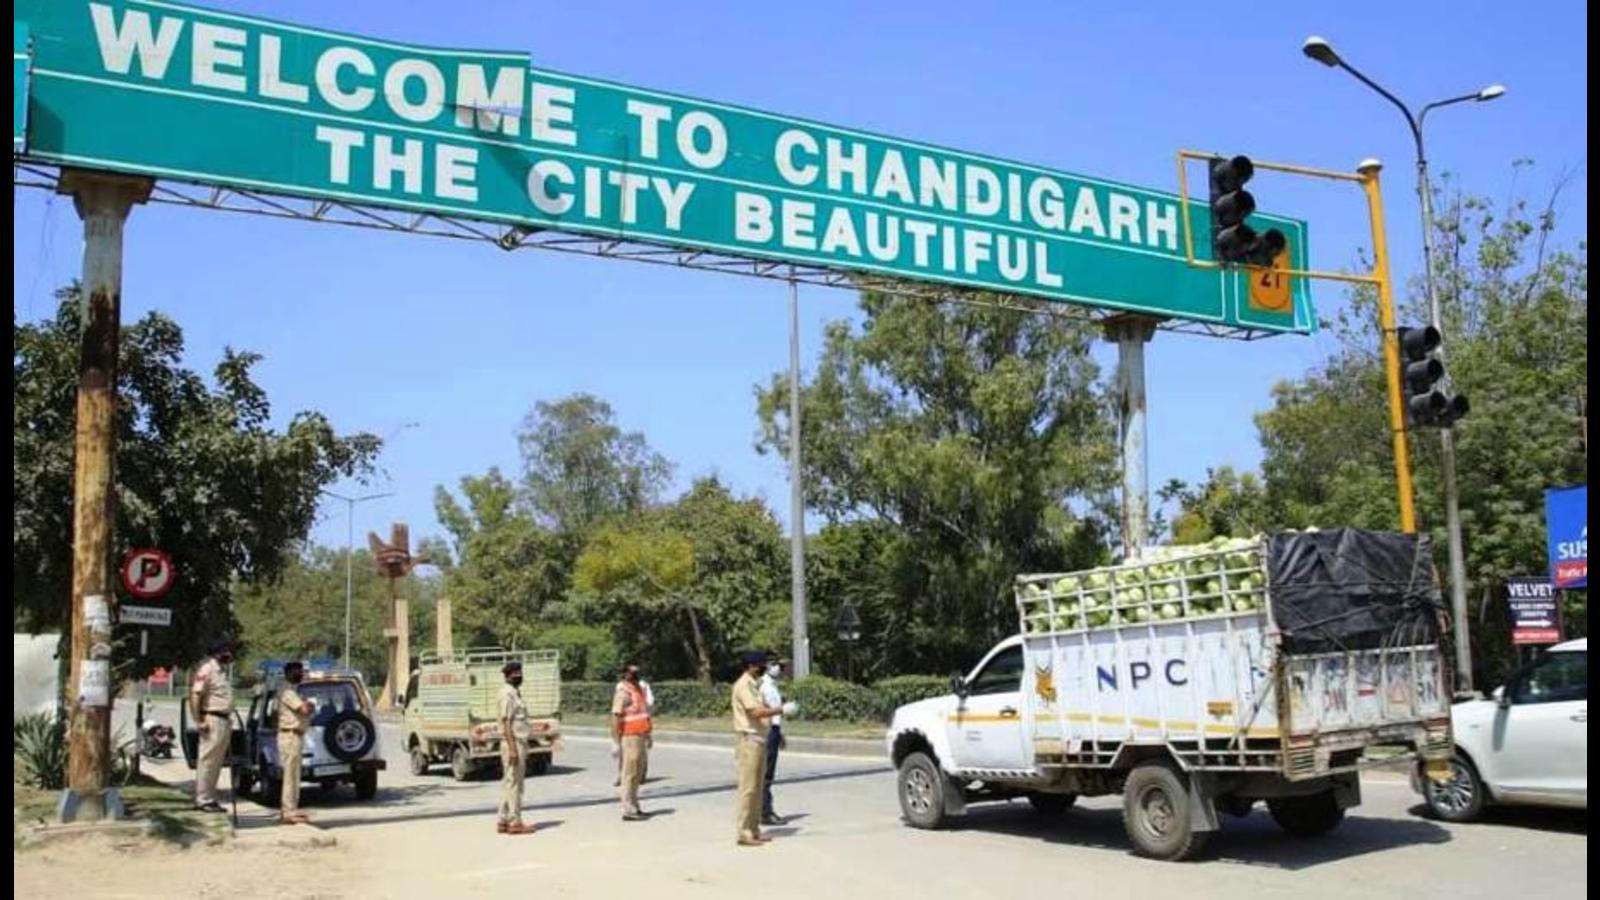 Six entry points to Chandigarh to be beautified - Hindustan Times